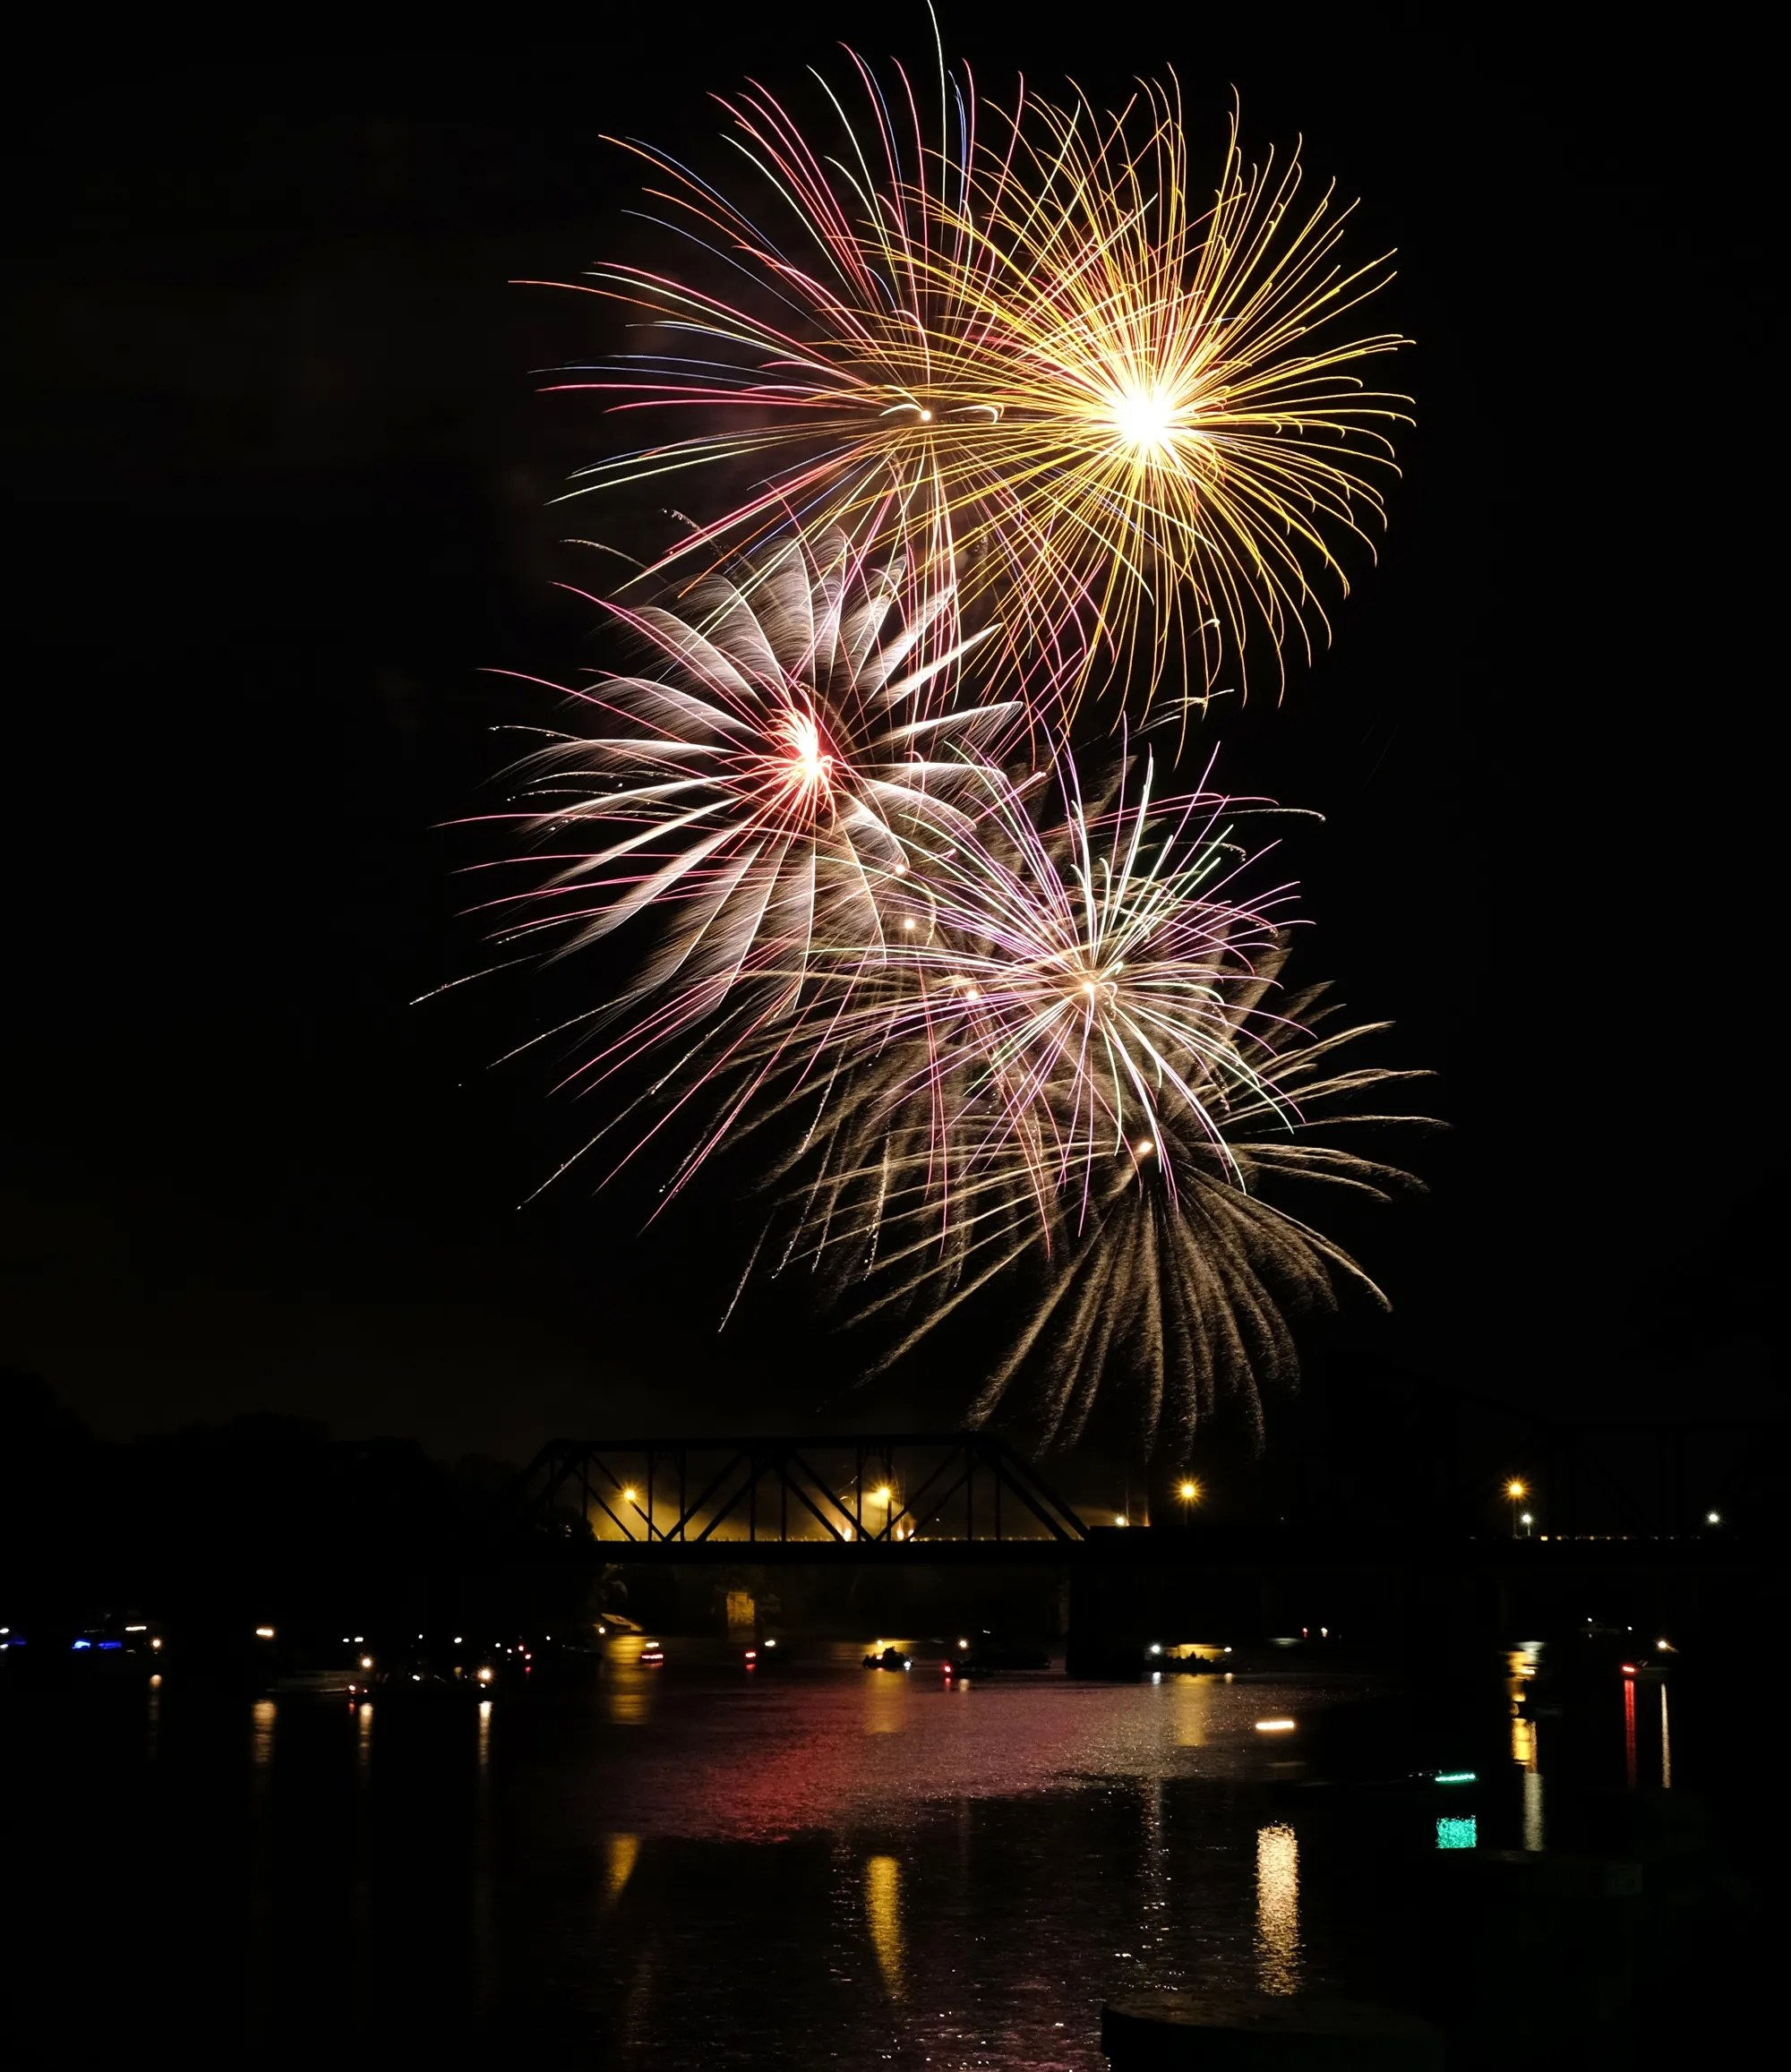 Augustans will again be treated to a fireworks display as part of the Independence Day Celebration over the Savannah River.